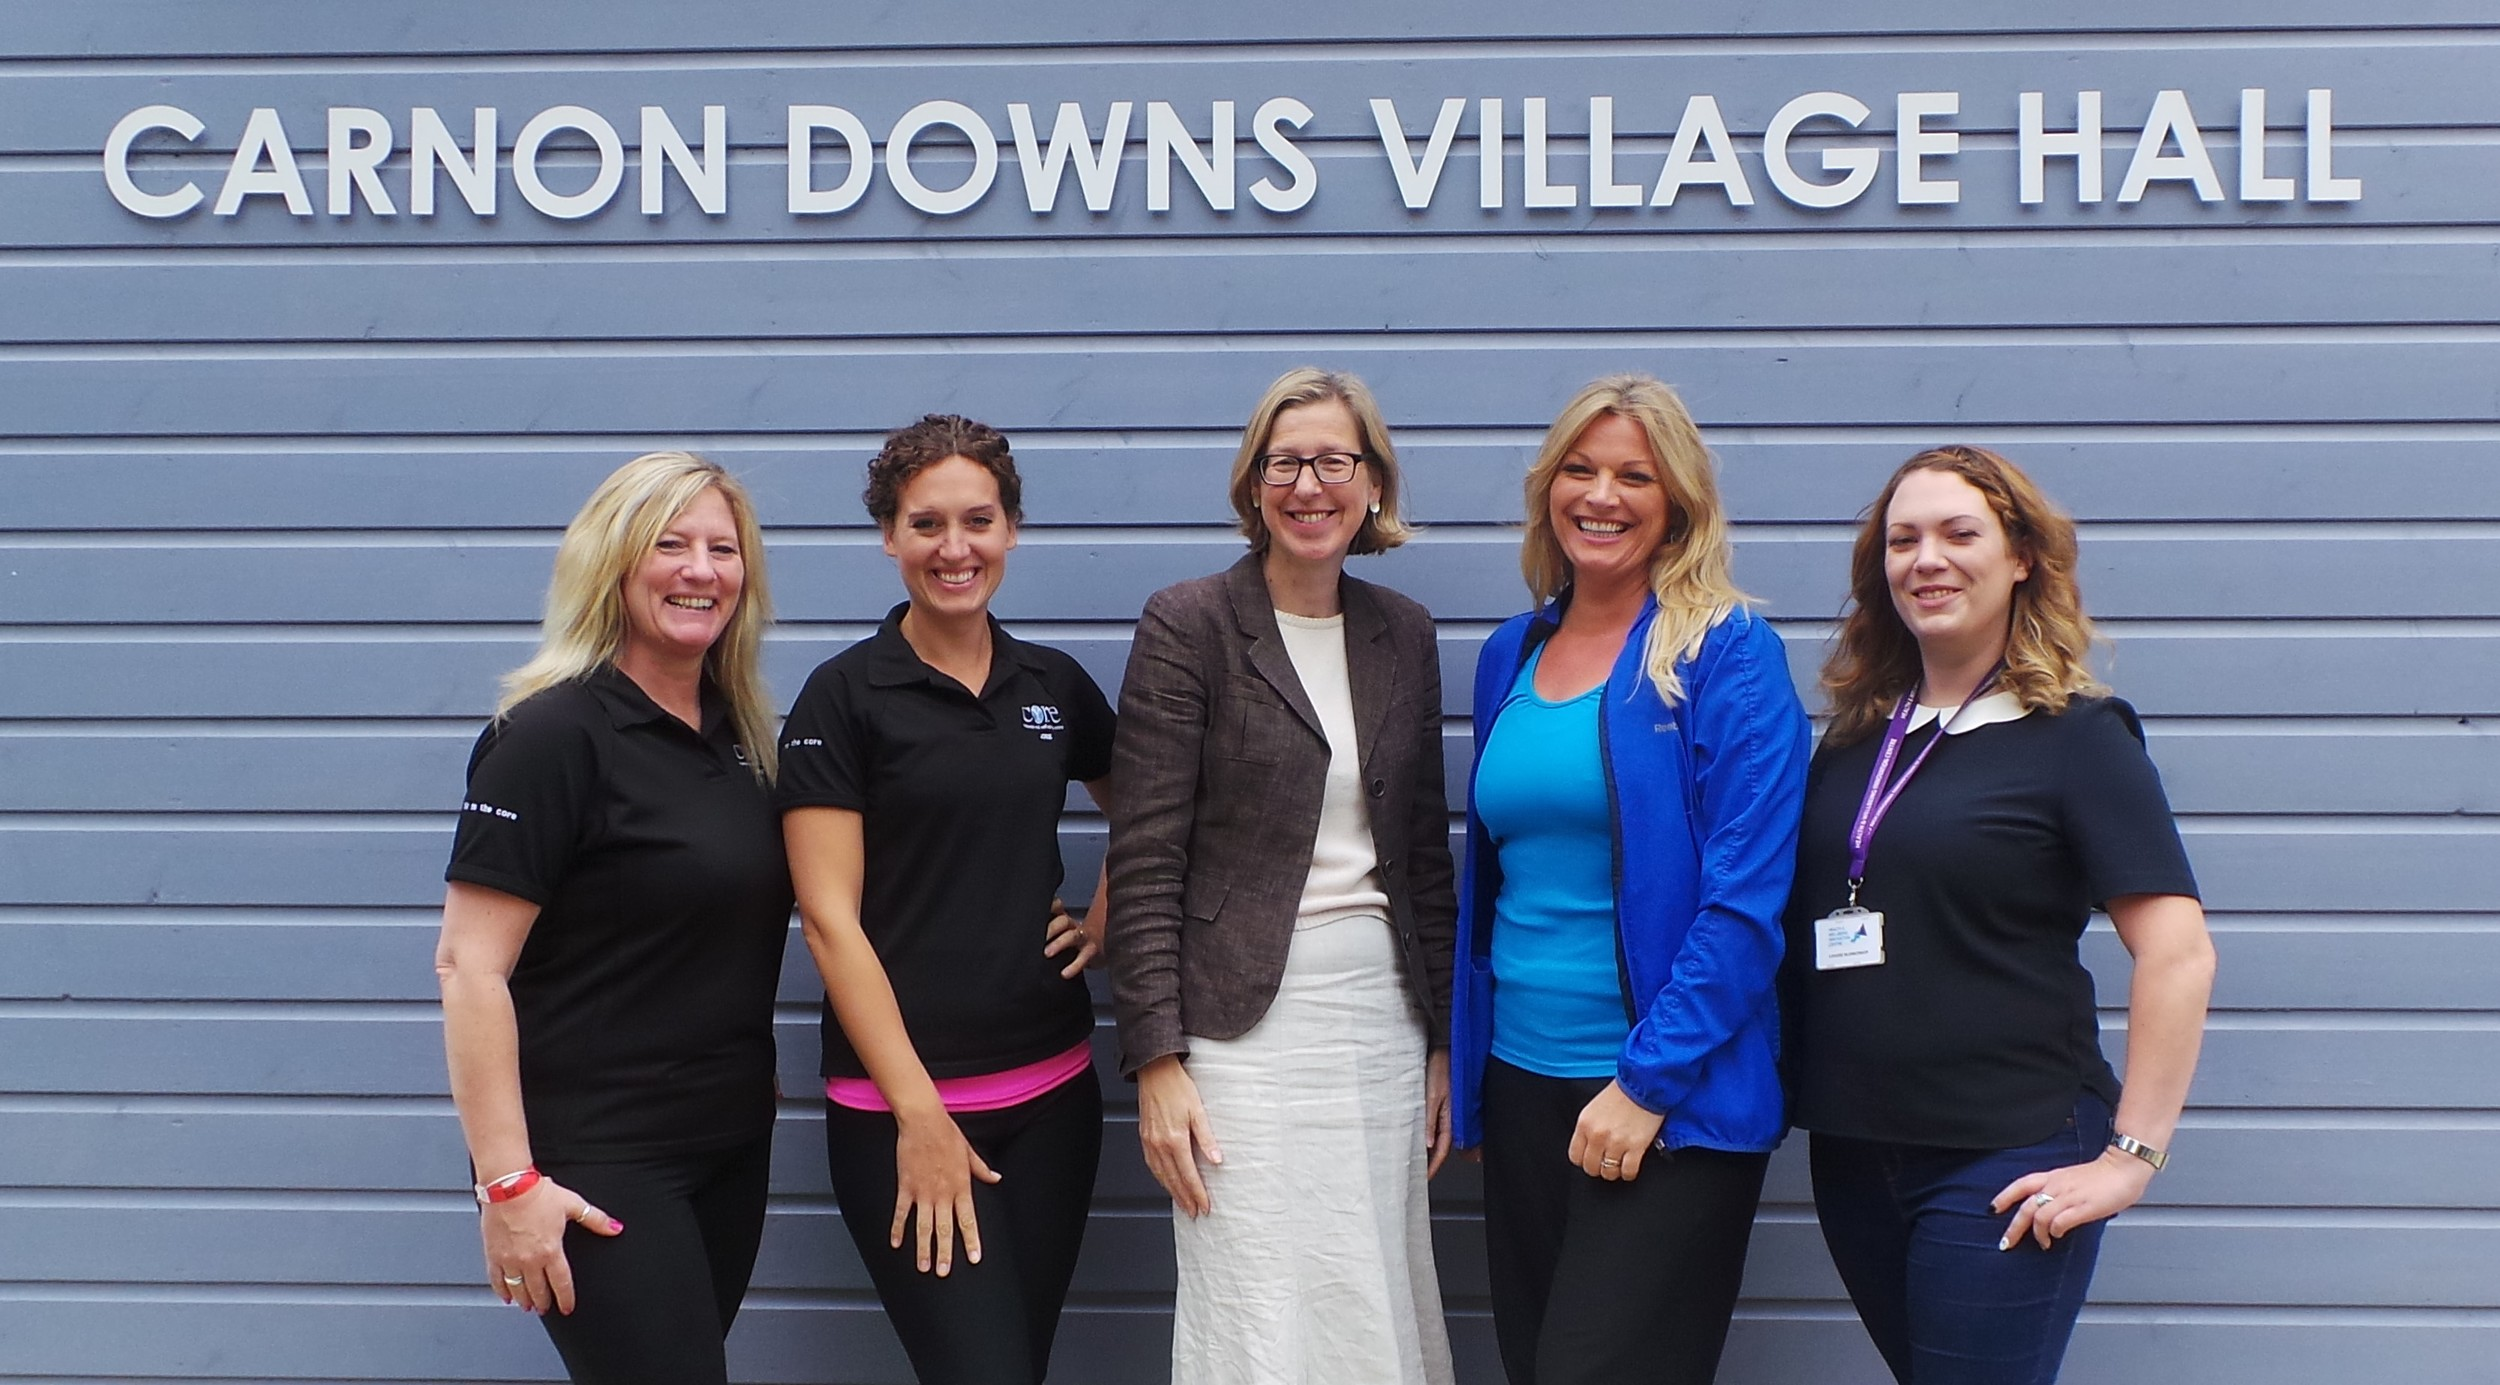 VISIT WITH SARAH NEWTON MP